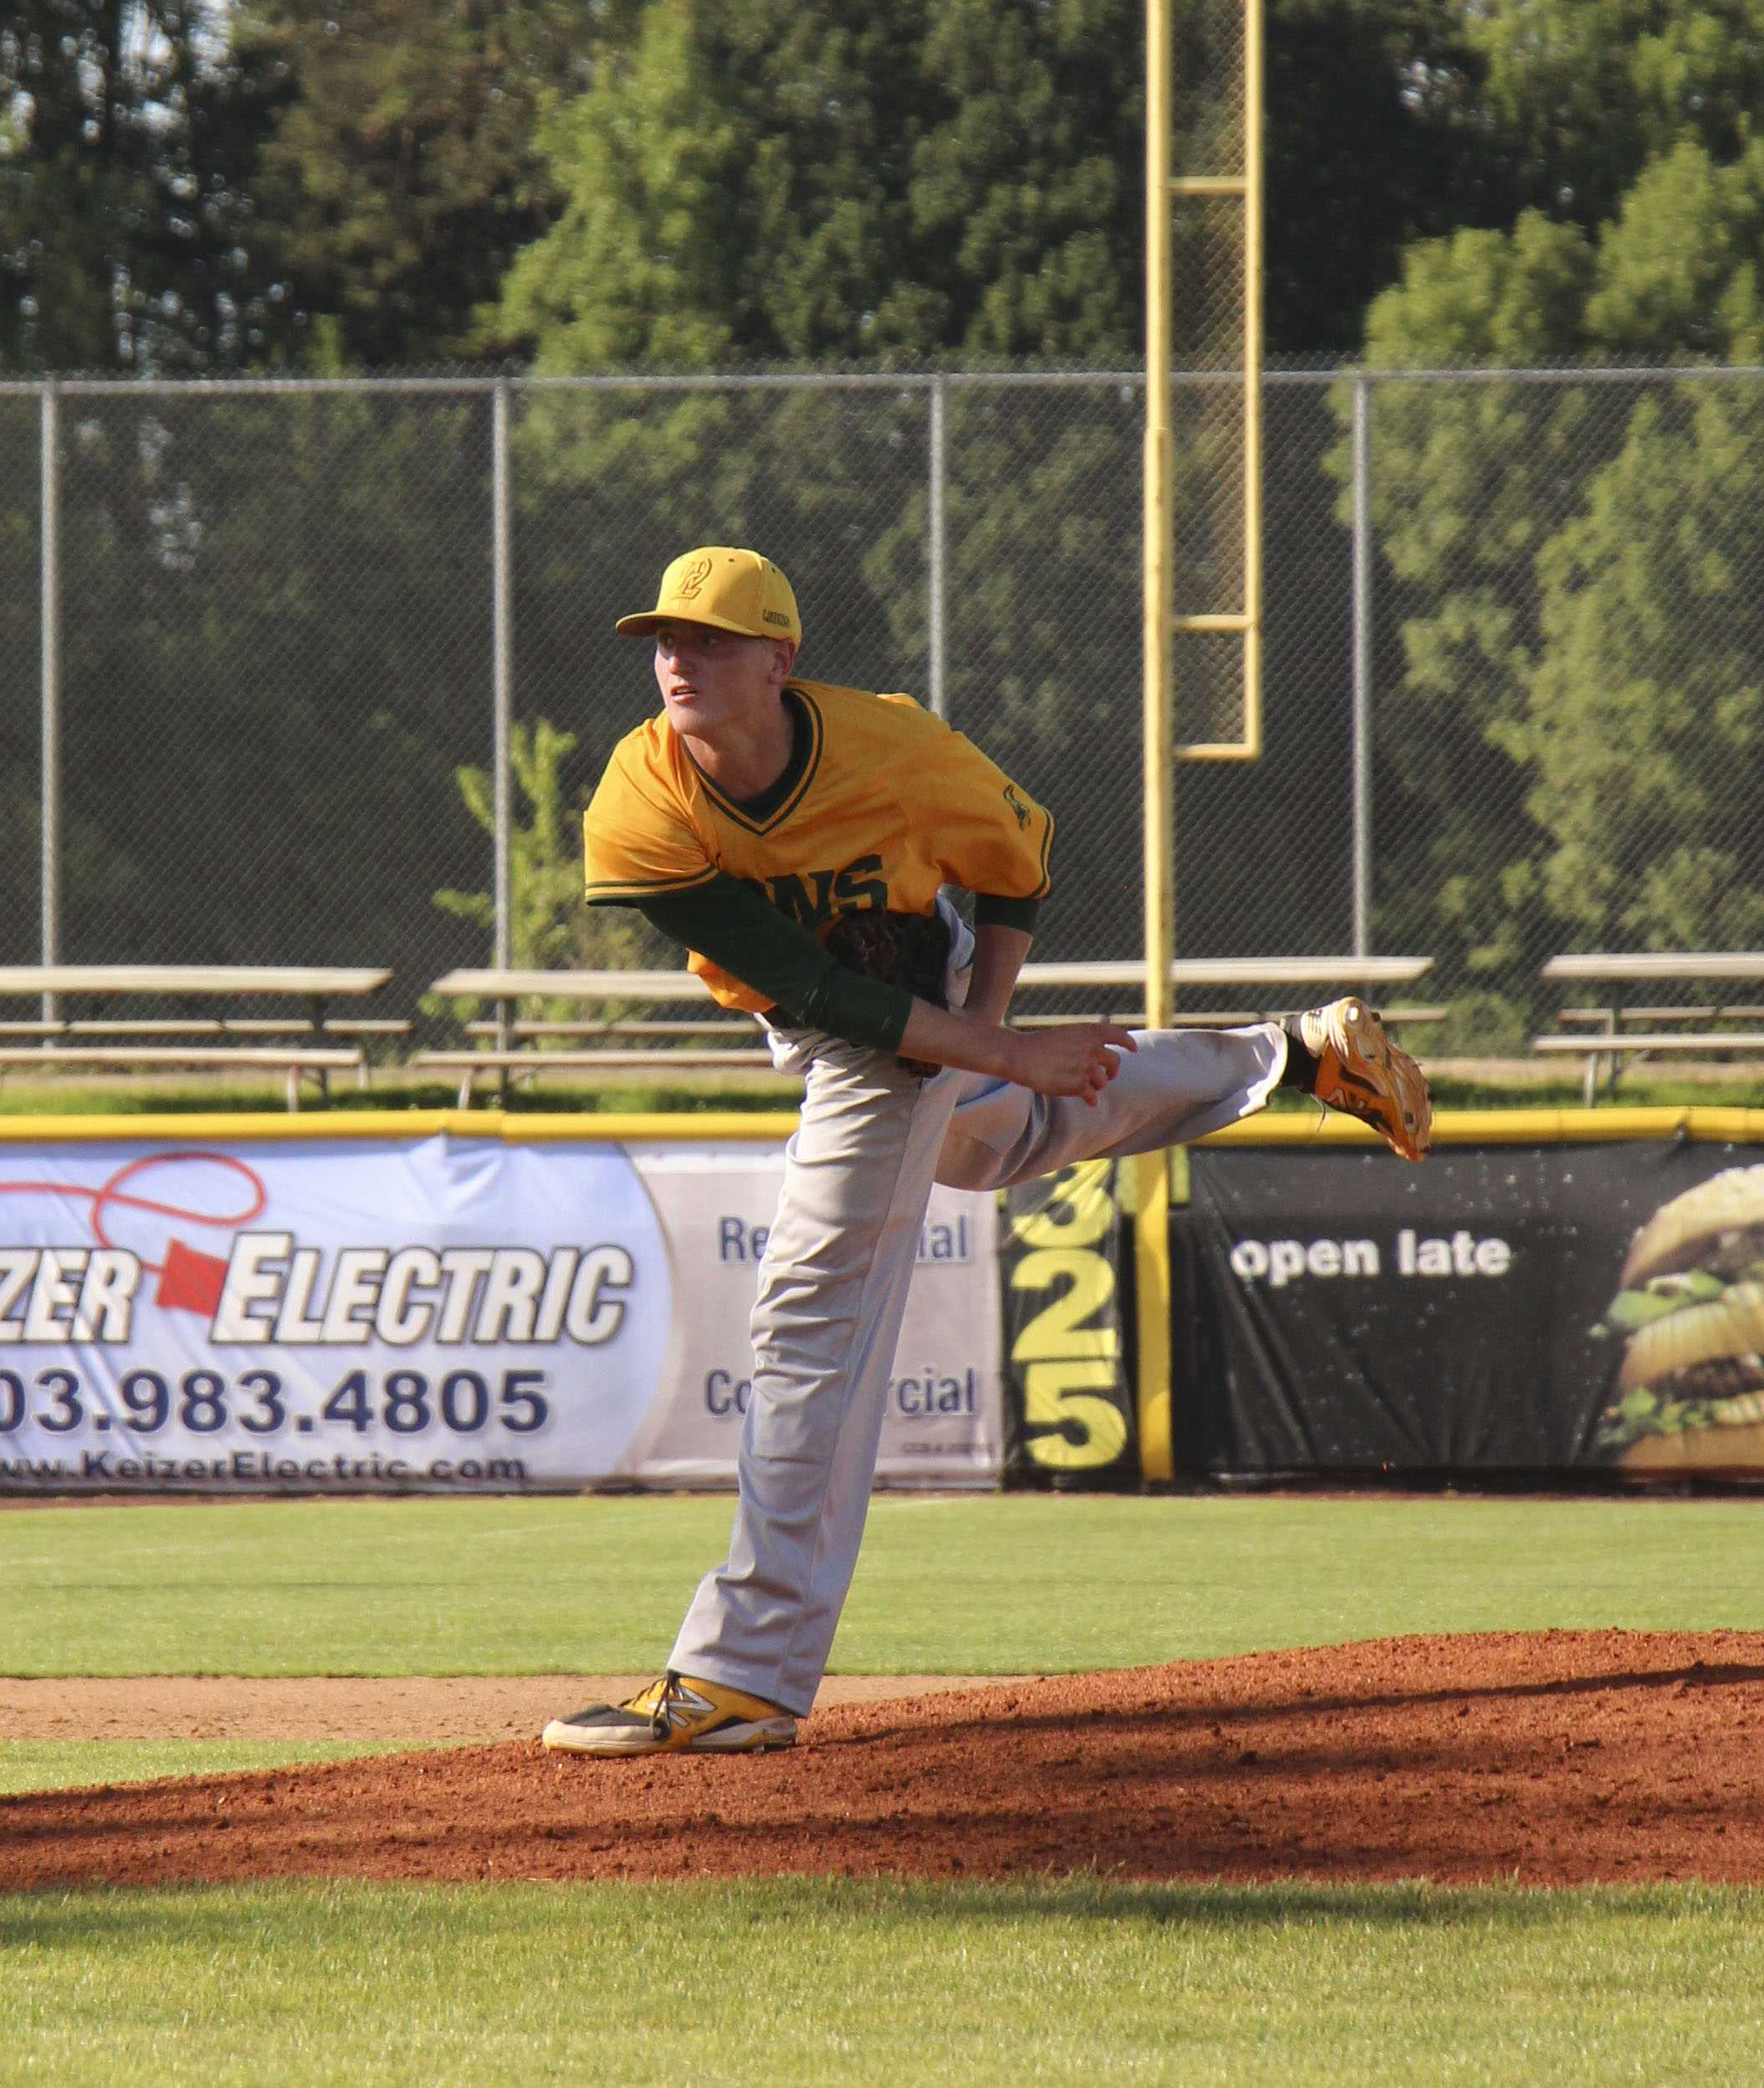 Karsen Lindell, Class of 2015, pitched a complete game for the Lions, but it still wasn't enough as the fell in the State Championship game to Sheldon 2-1.